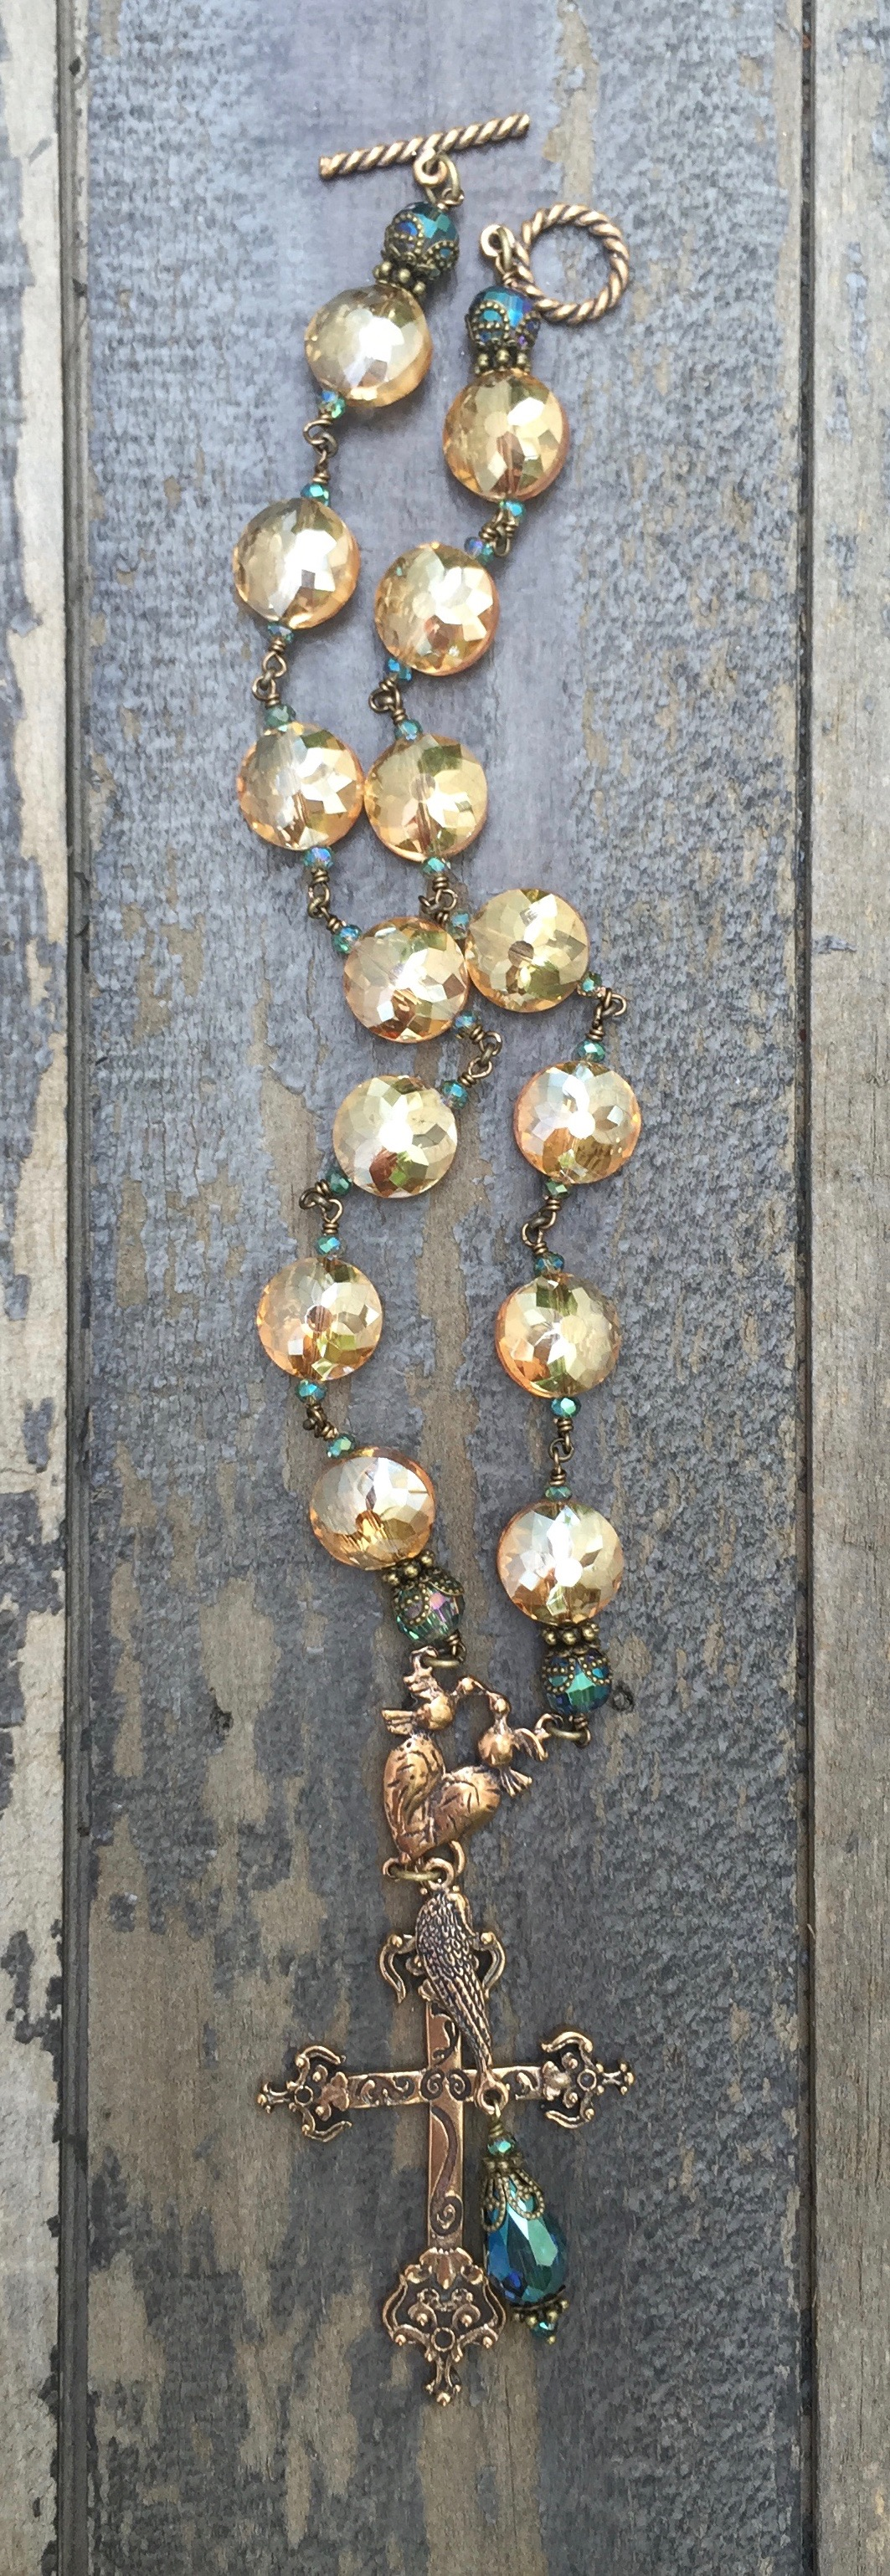 Apricot and Aqua Crystal Necklace – 12mm